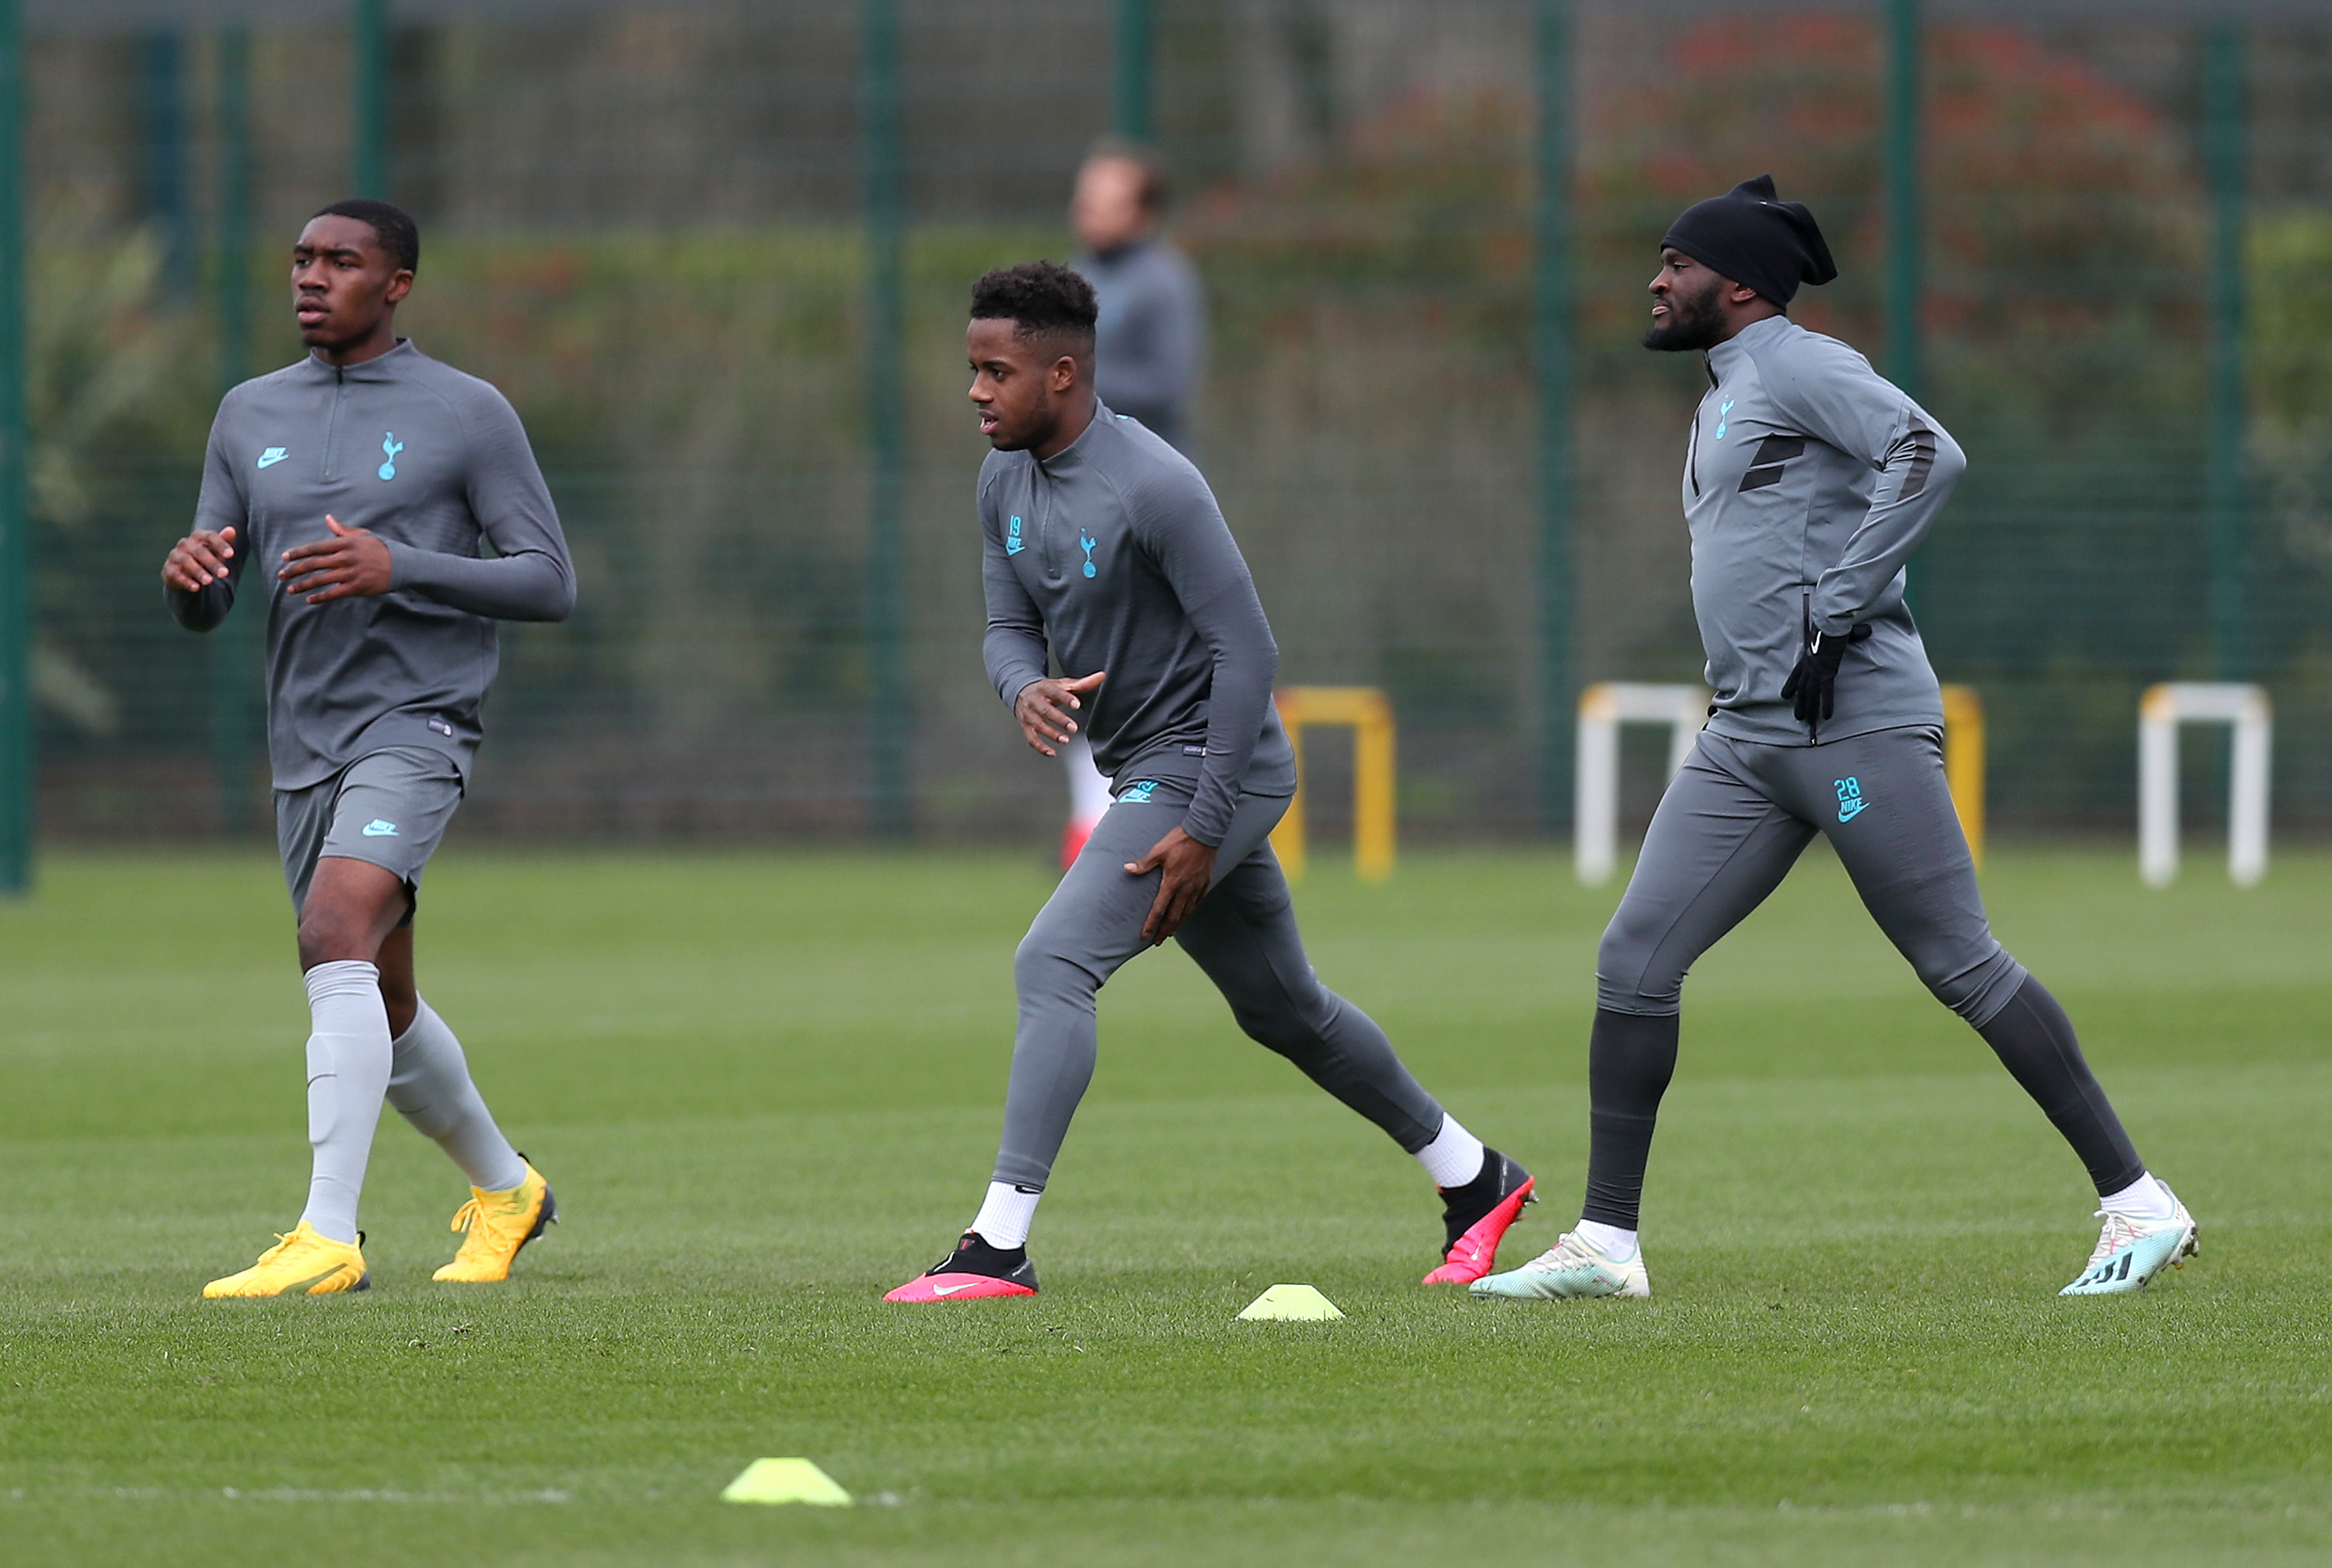 Barcelona face big stumbling block in pursuit of Ryan Sessegnon who is seen in training in the picture